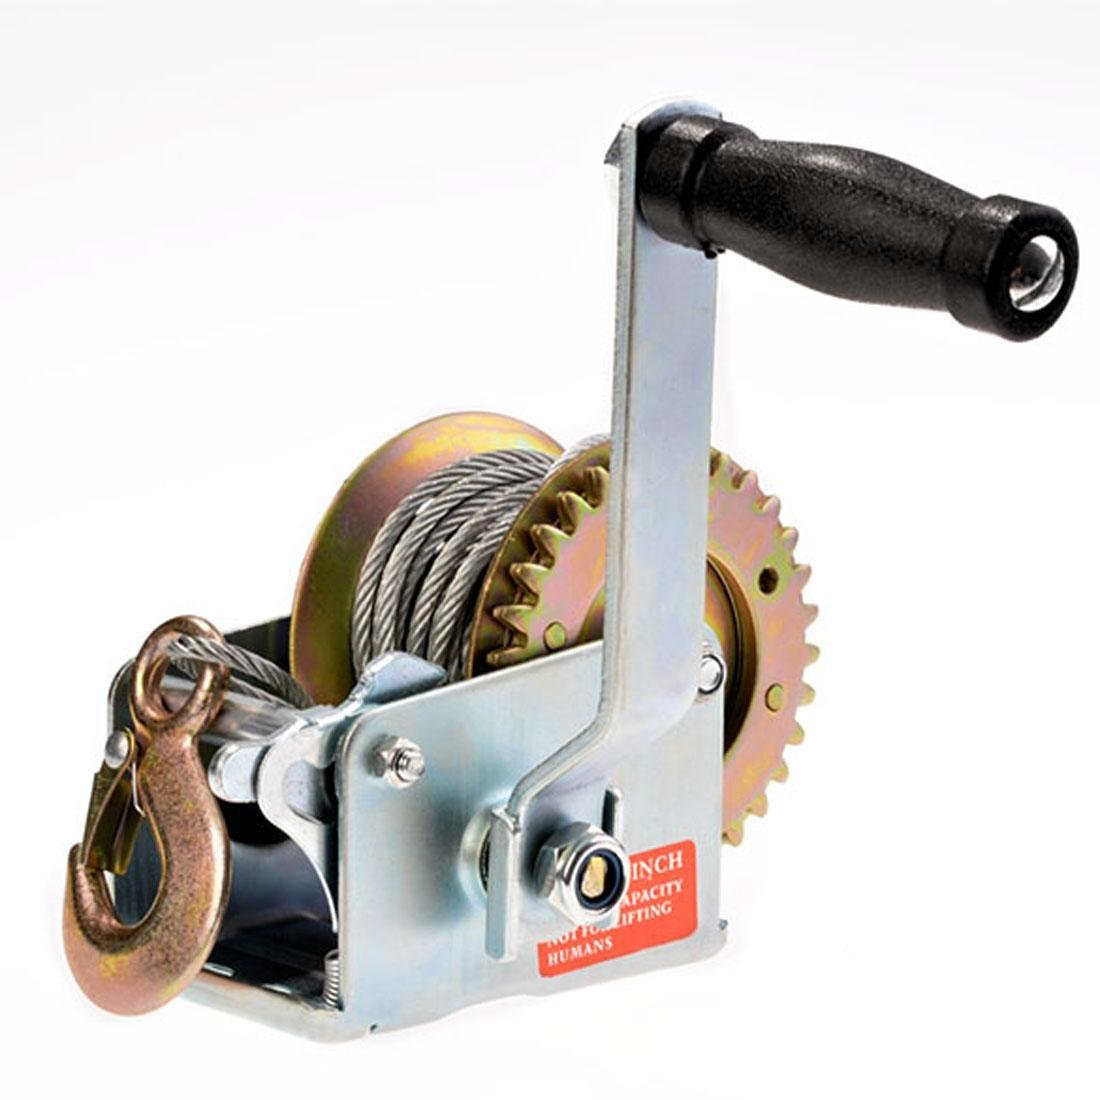 Utheing 600 lbs Hand Winch,Heavy Duty Capacity Winch ATV Boat Trailer by utheing (Image #6)